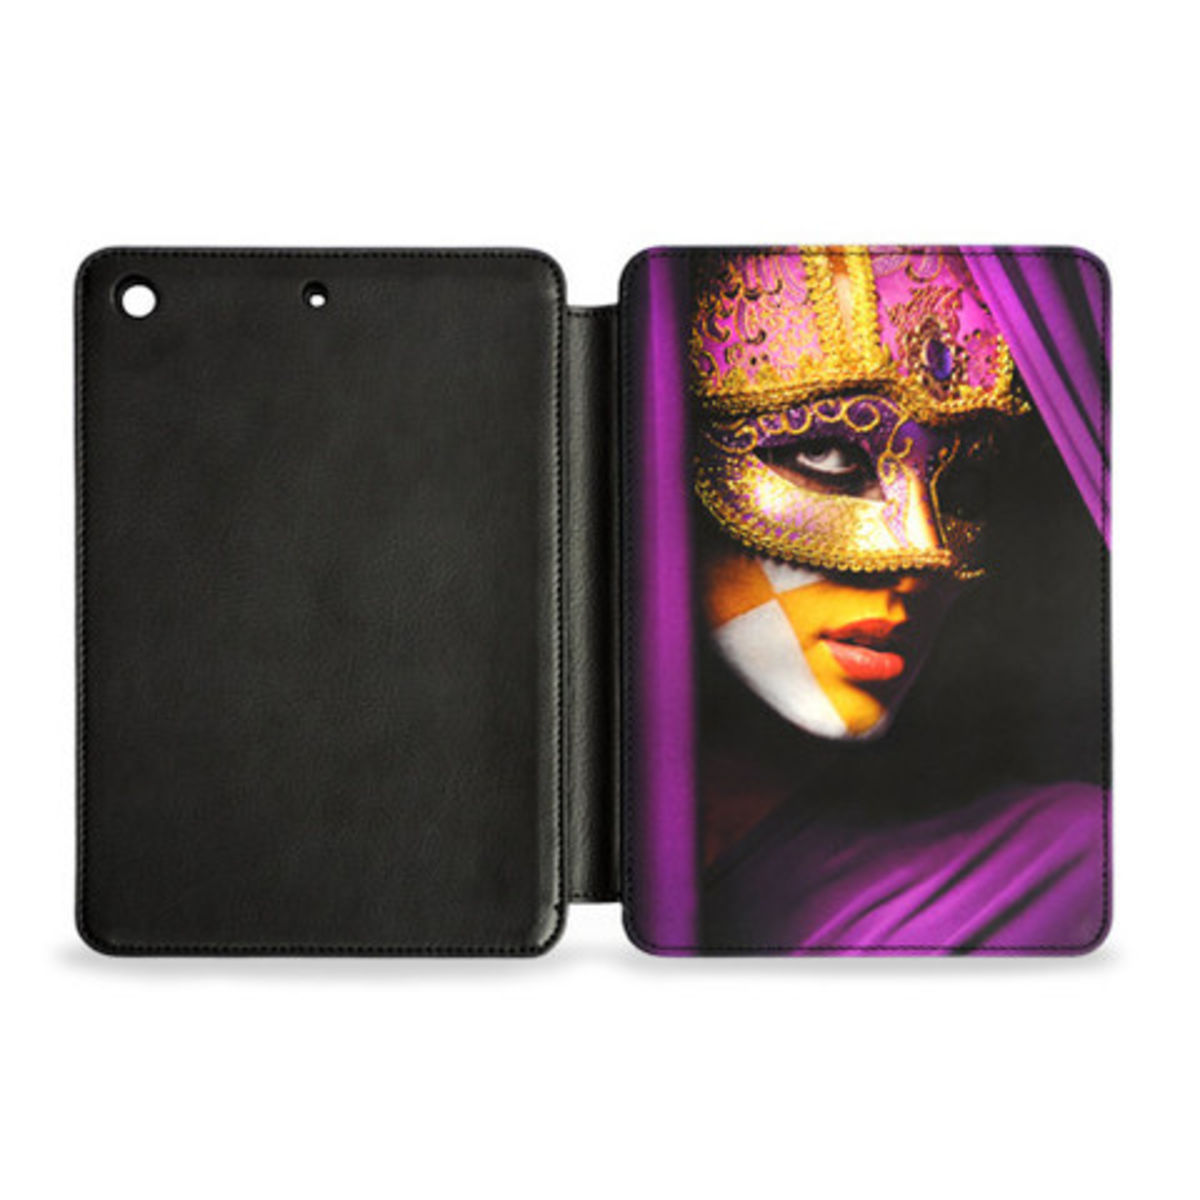 Personalised Leather iPad Mini 2 Cases